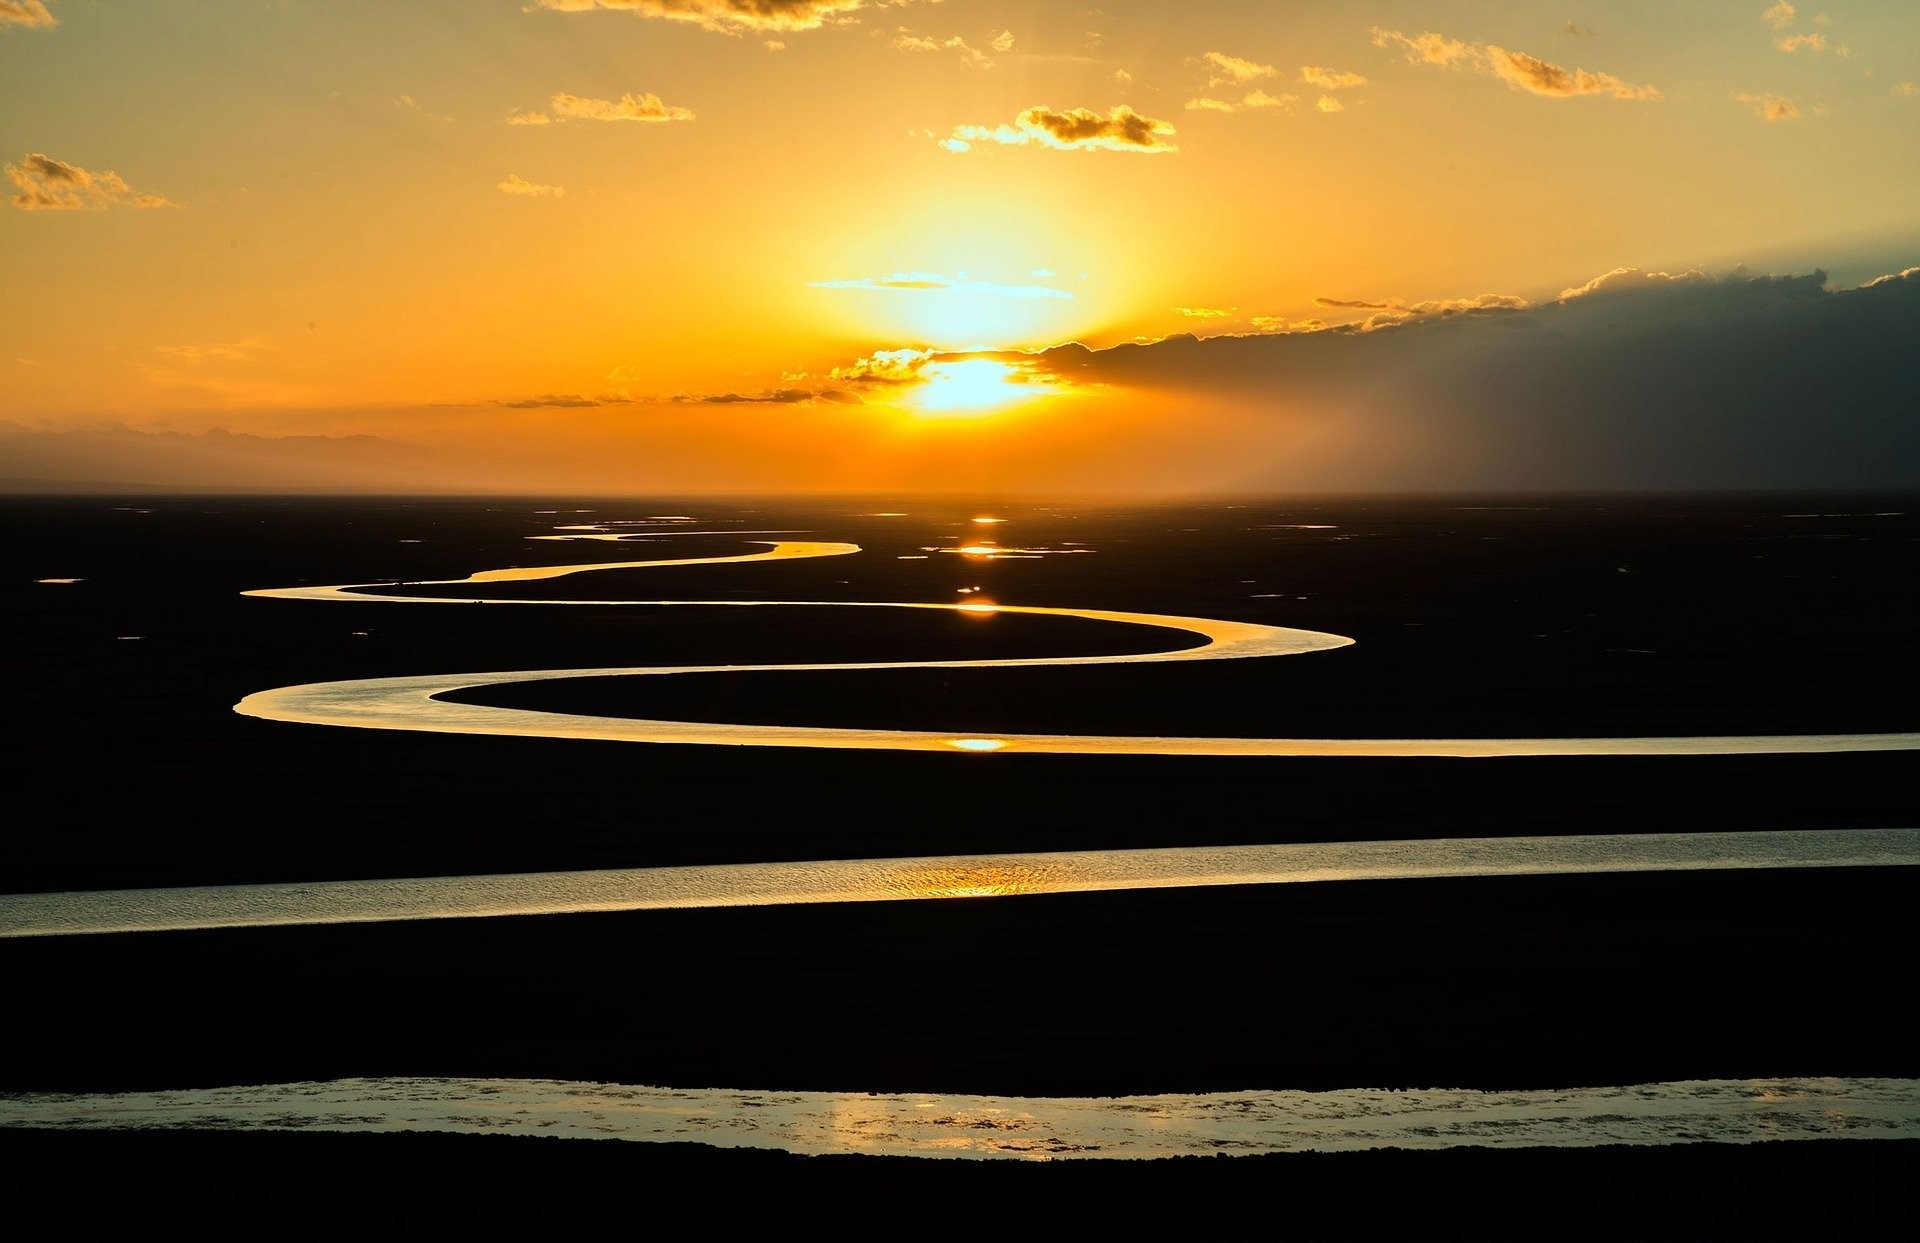 Curving river at sunset